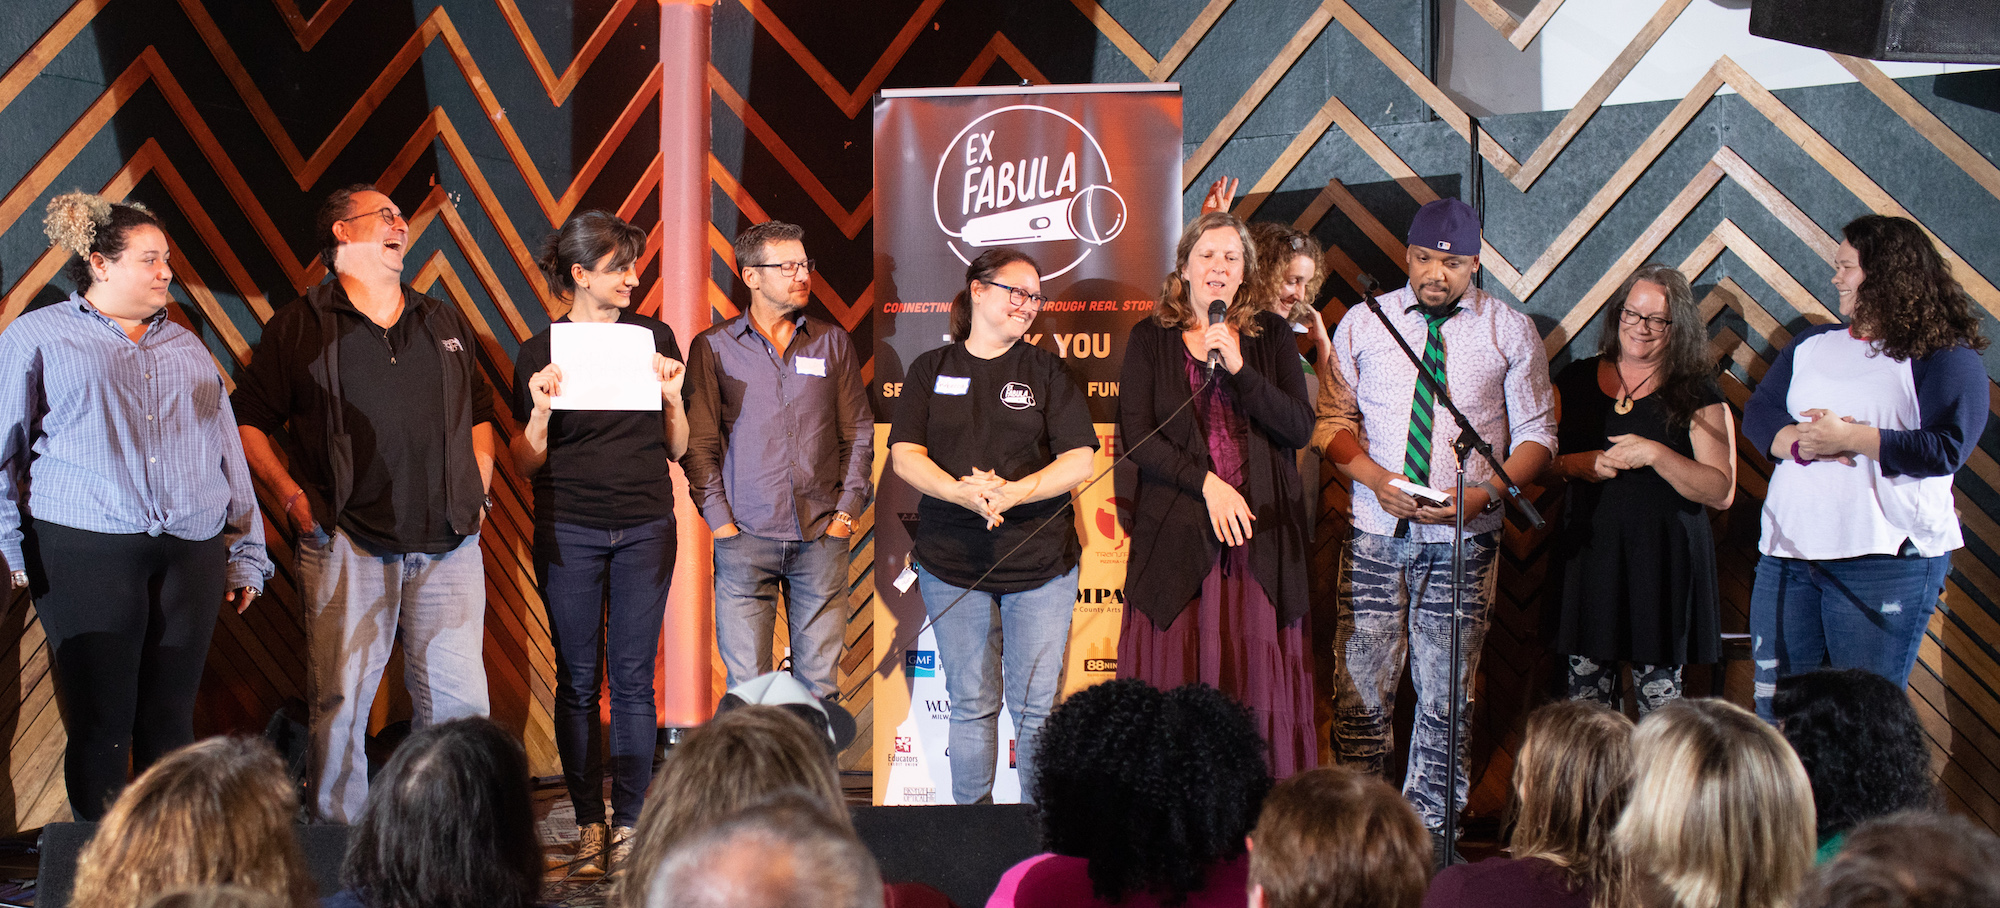 9 Adults standing in a line on stage reviewing their stories